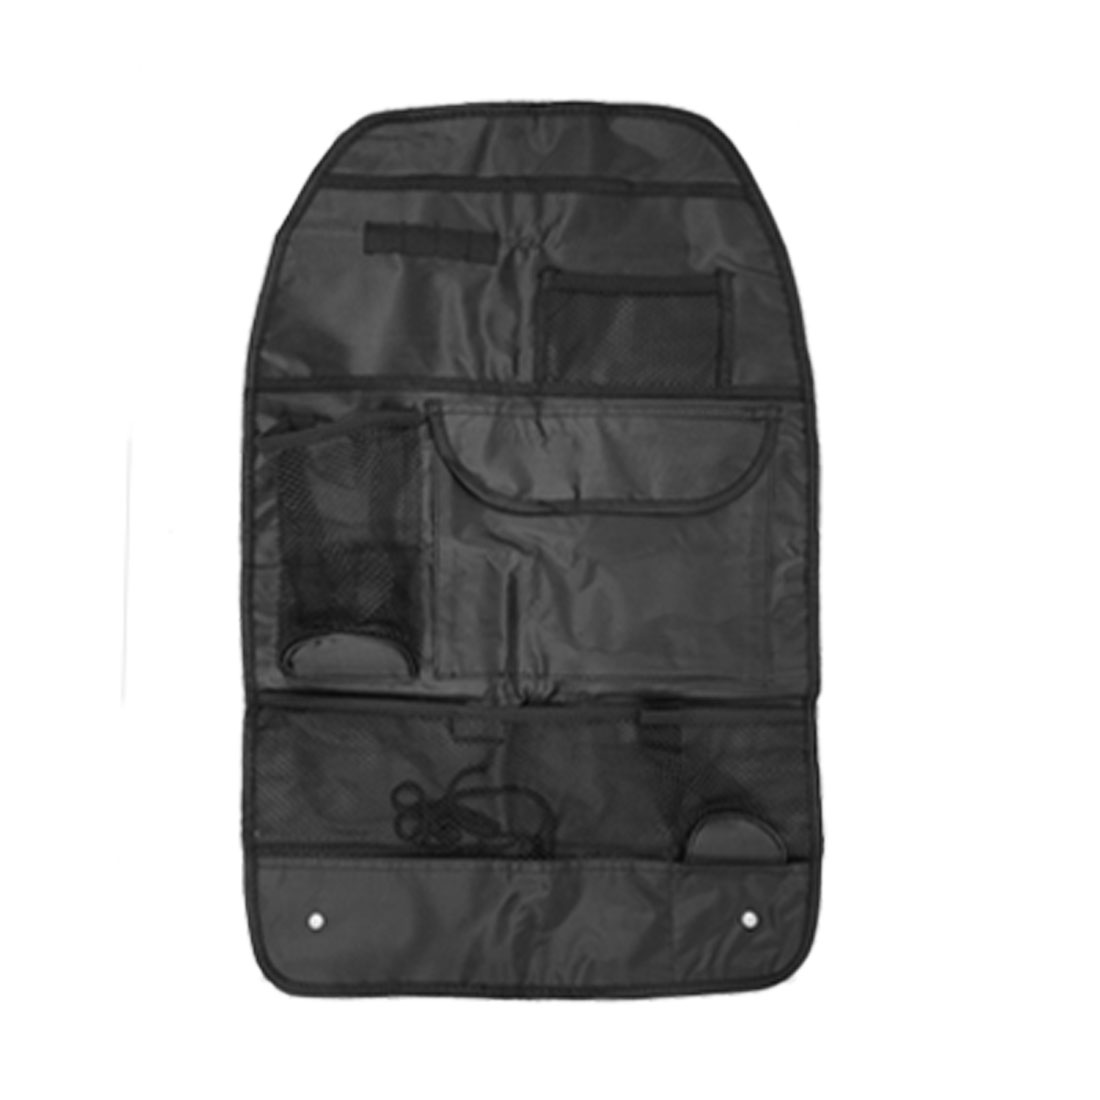 Nylon 5 Compartment Black Car Auto Back Seat Organizer with Lanyard